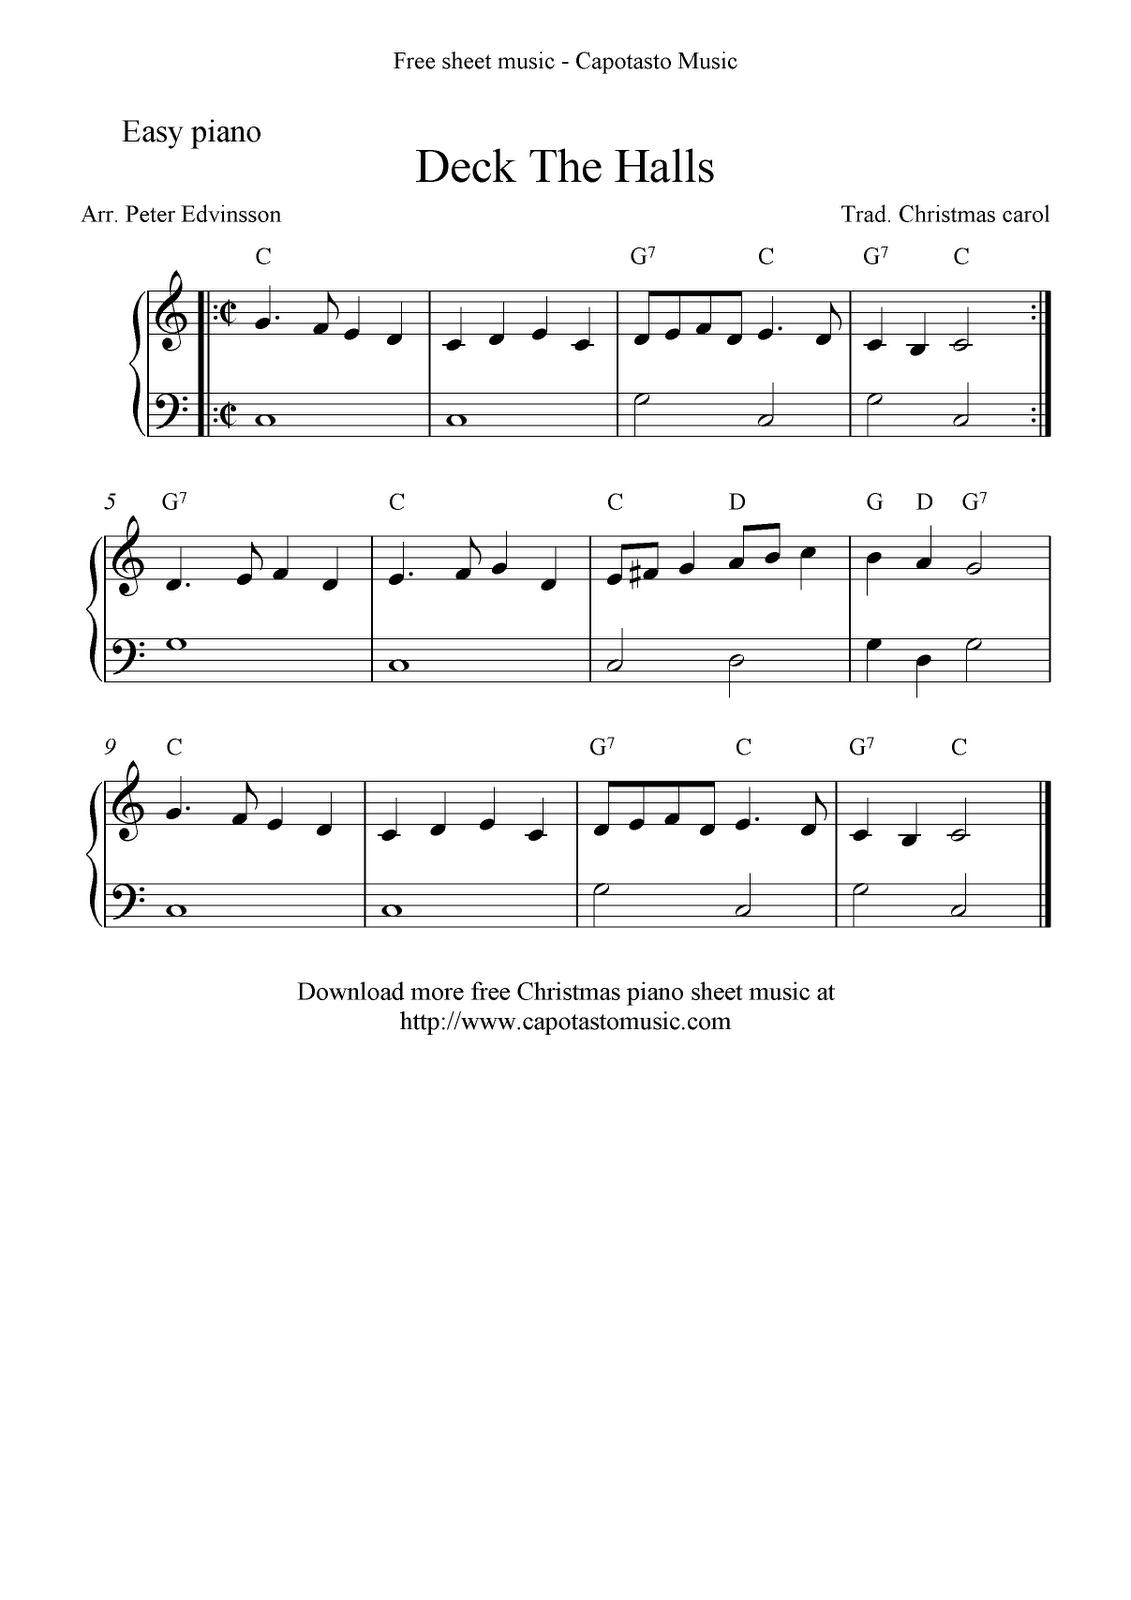 deck the halls easy piano sheet music free